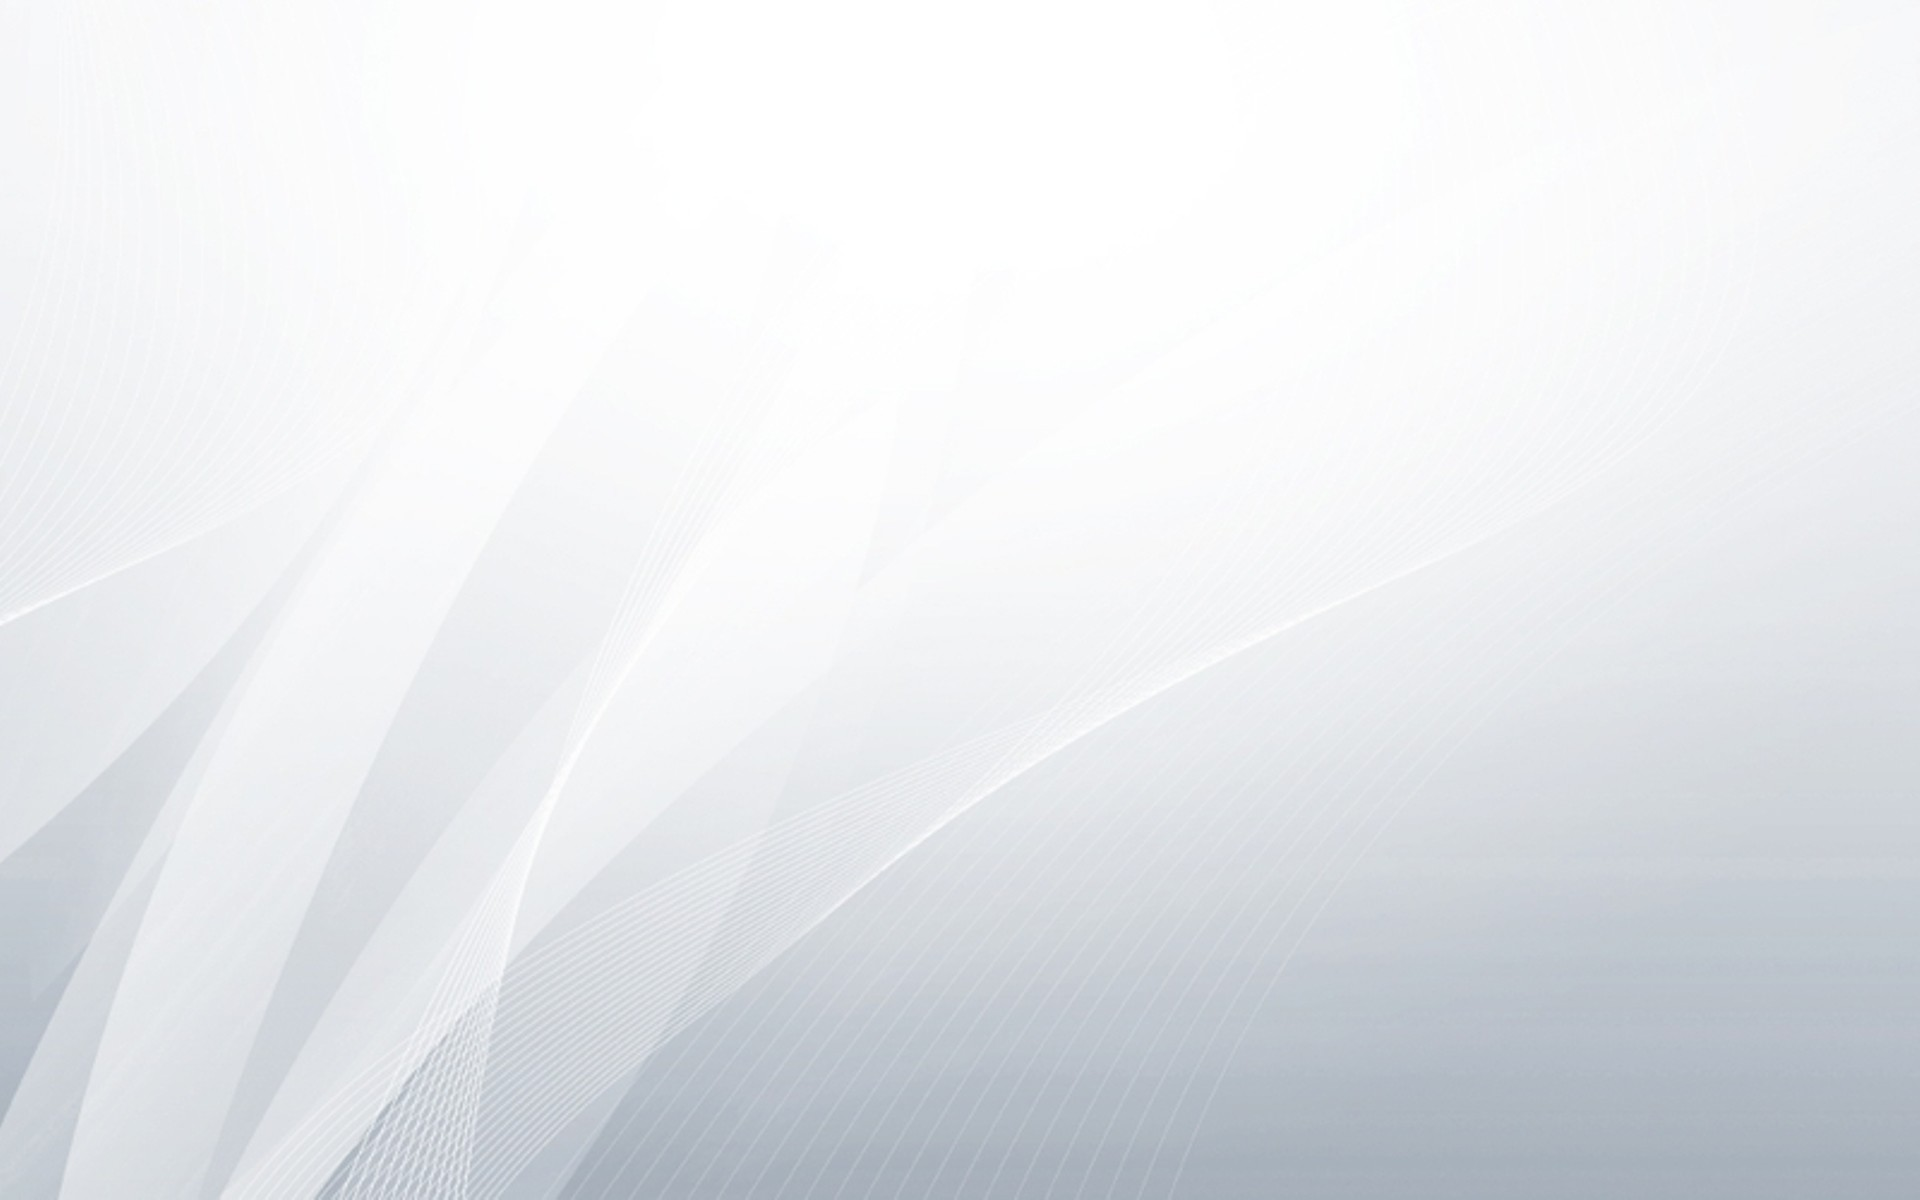 40 White HD Wallpapers, Backgrounds